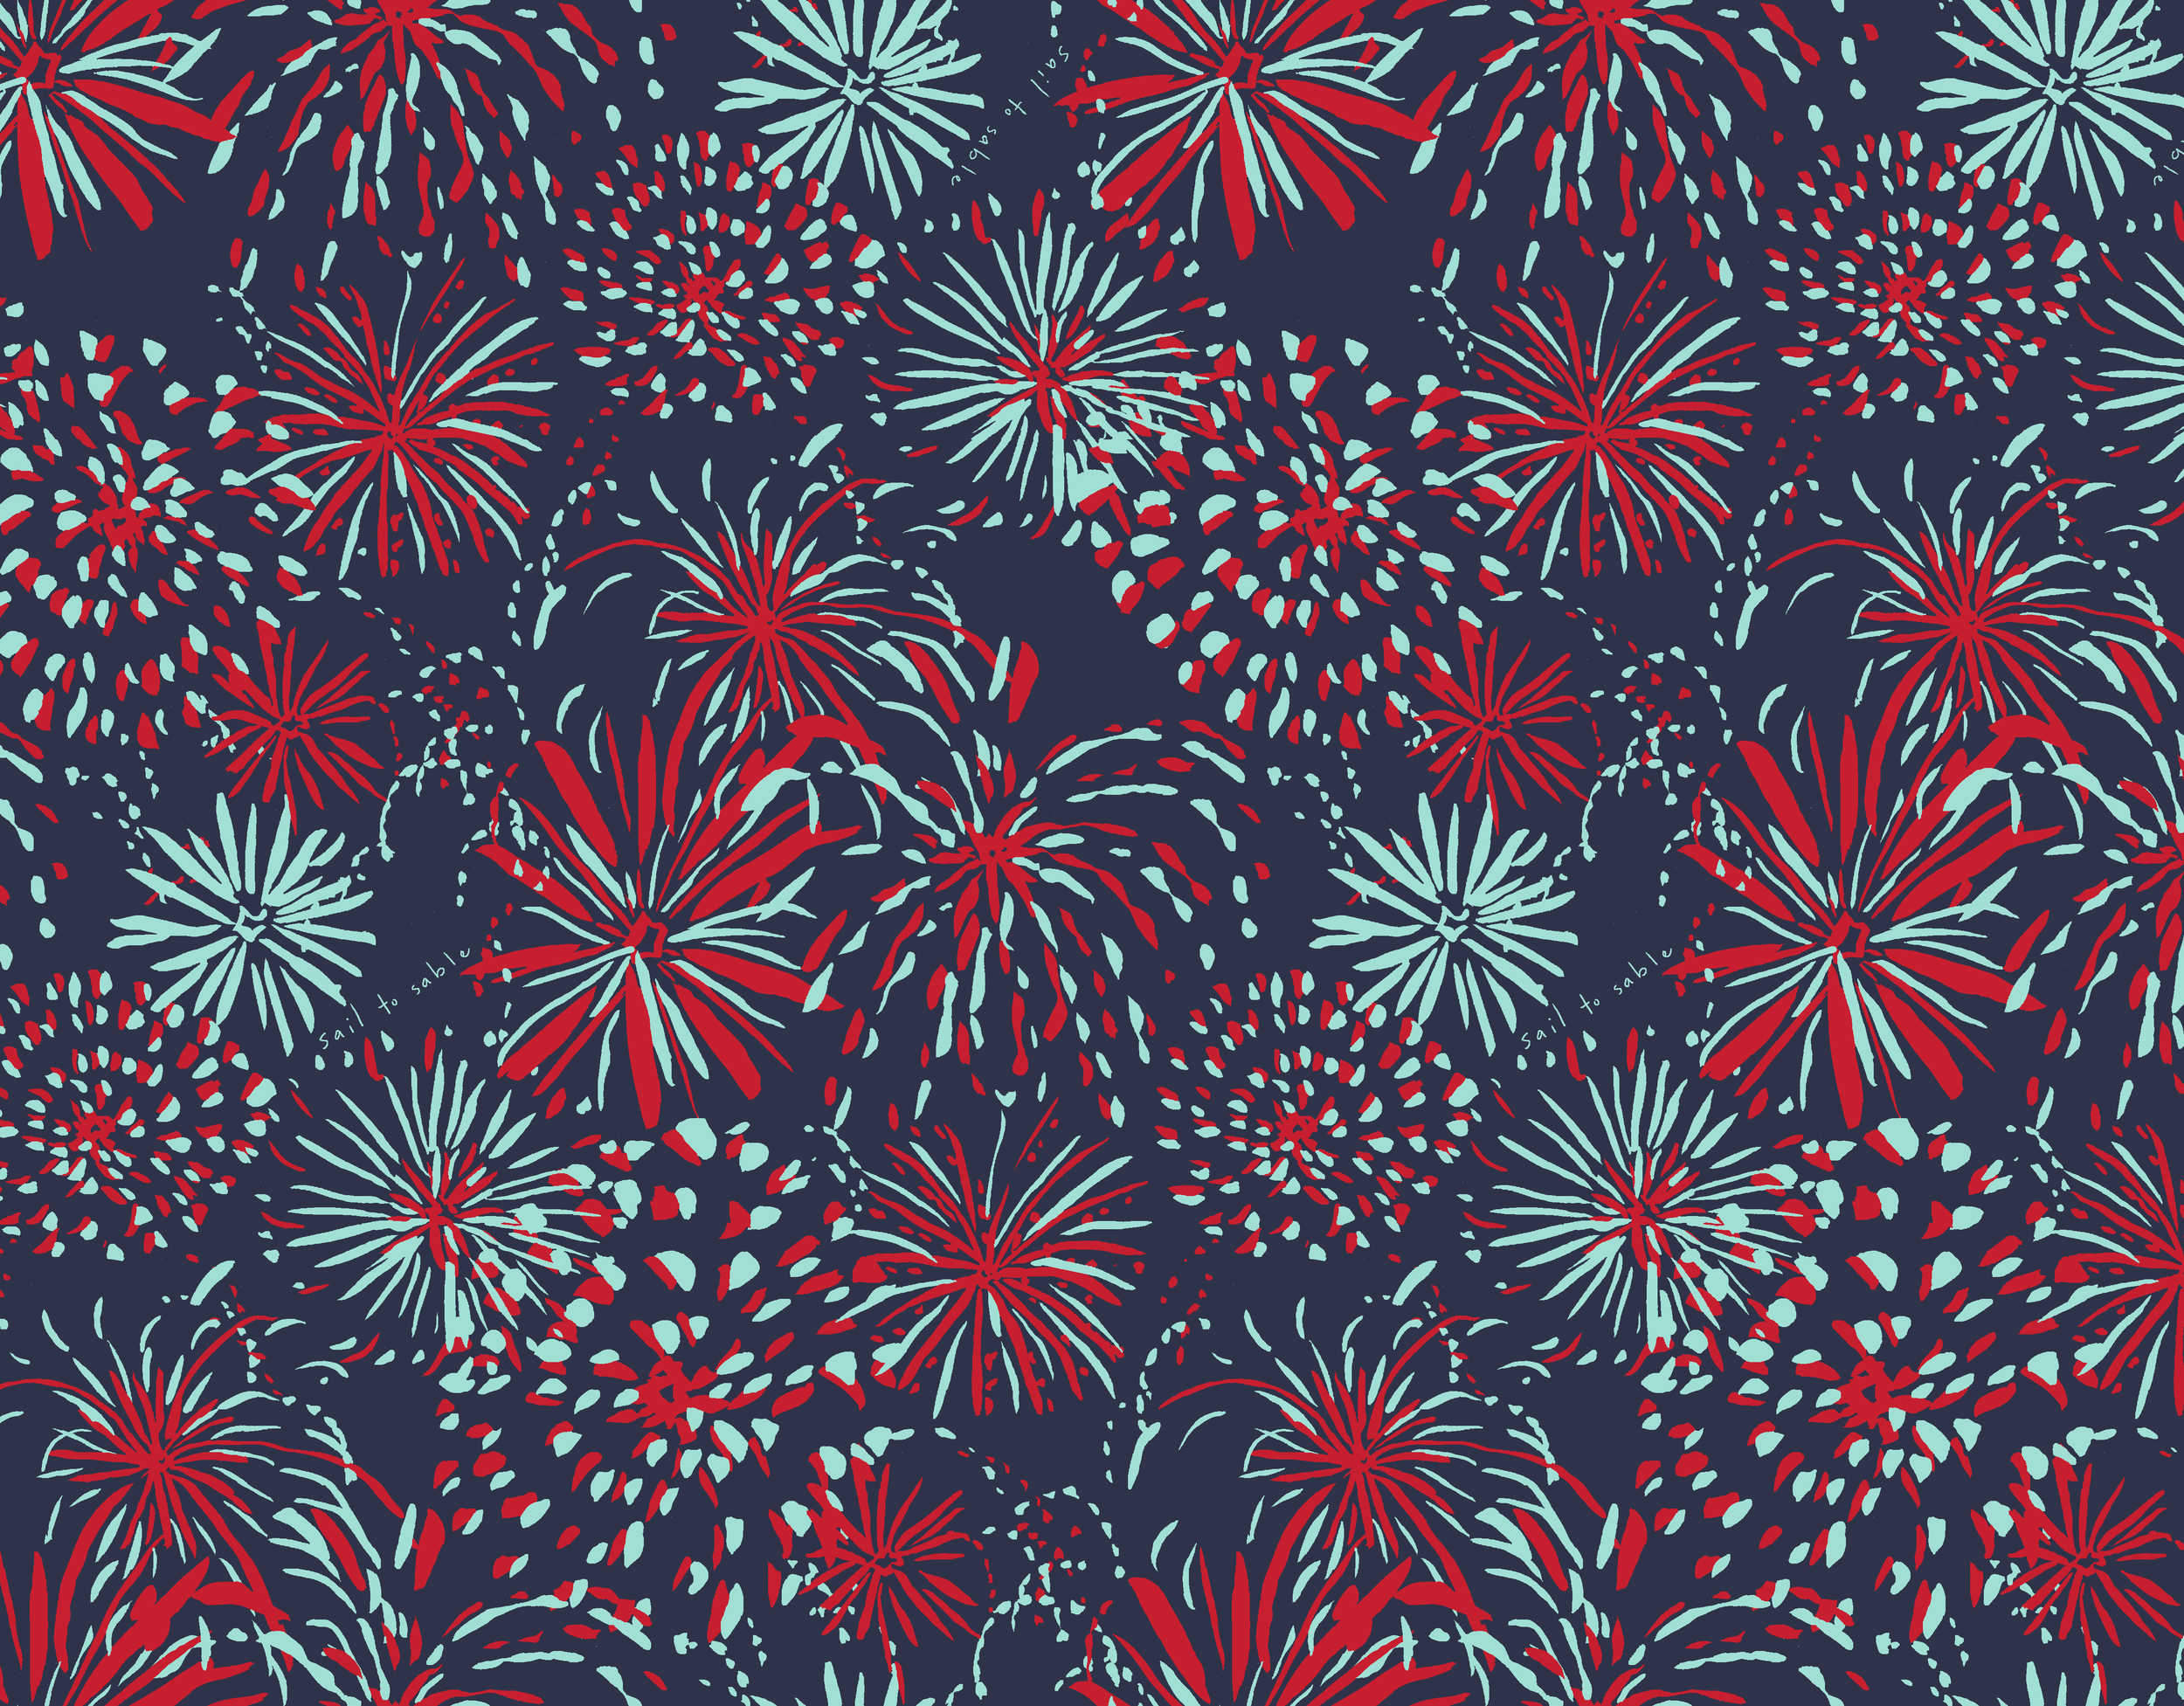 Sail to Sable S16 Fireworks Print